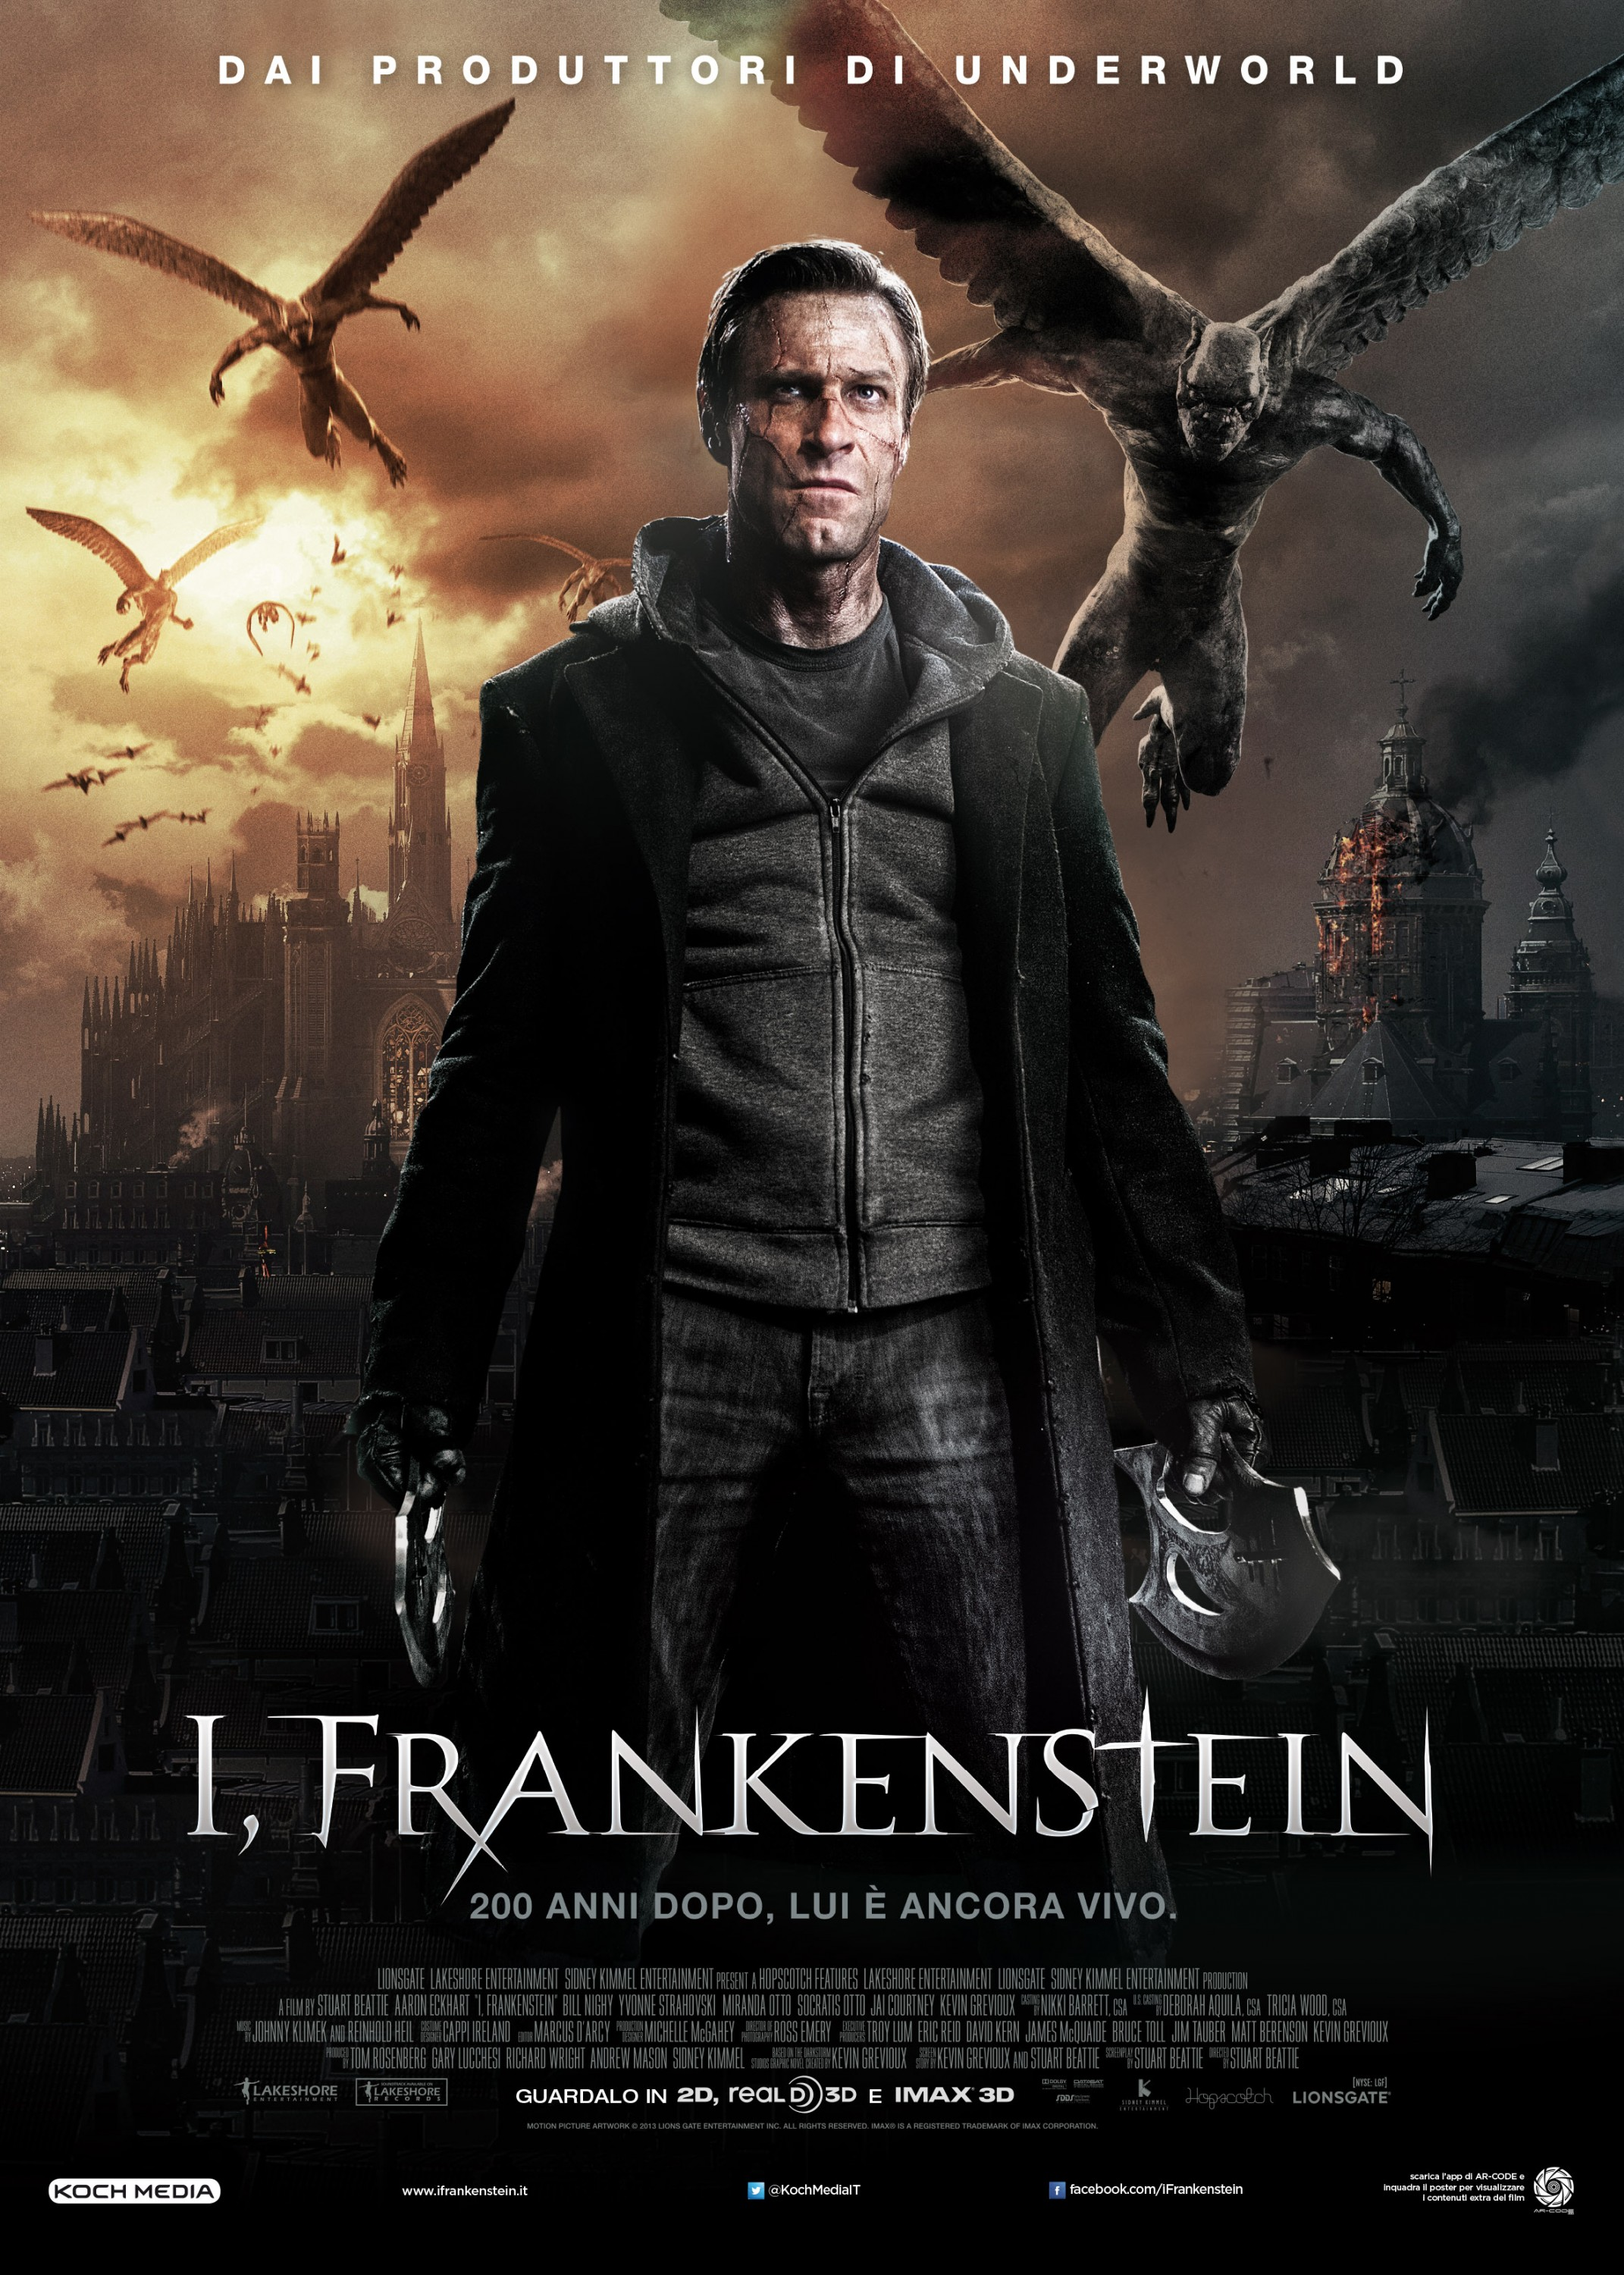 http://pakistan.jobz.pk/wp-content/uploads/2014/01/i-frankenstein-2014-movie-poster.jpg